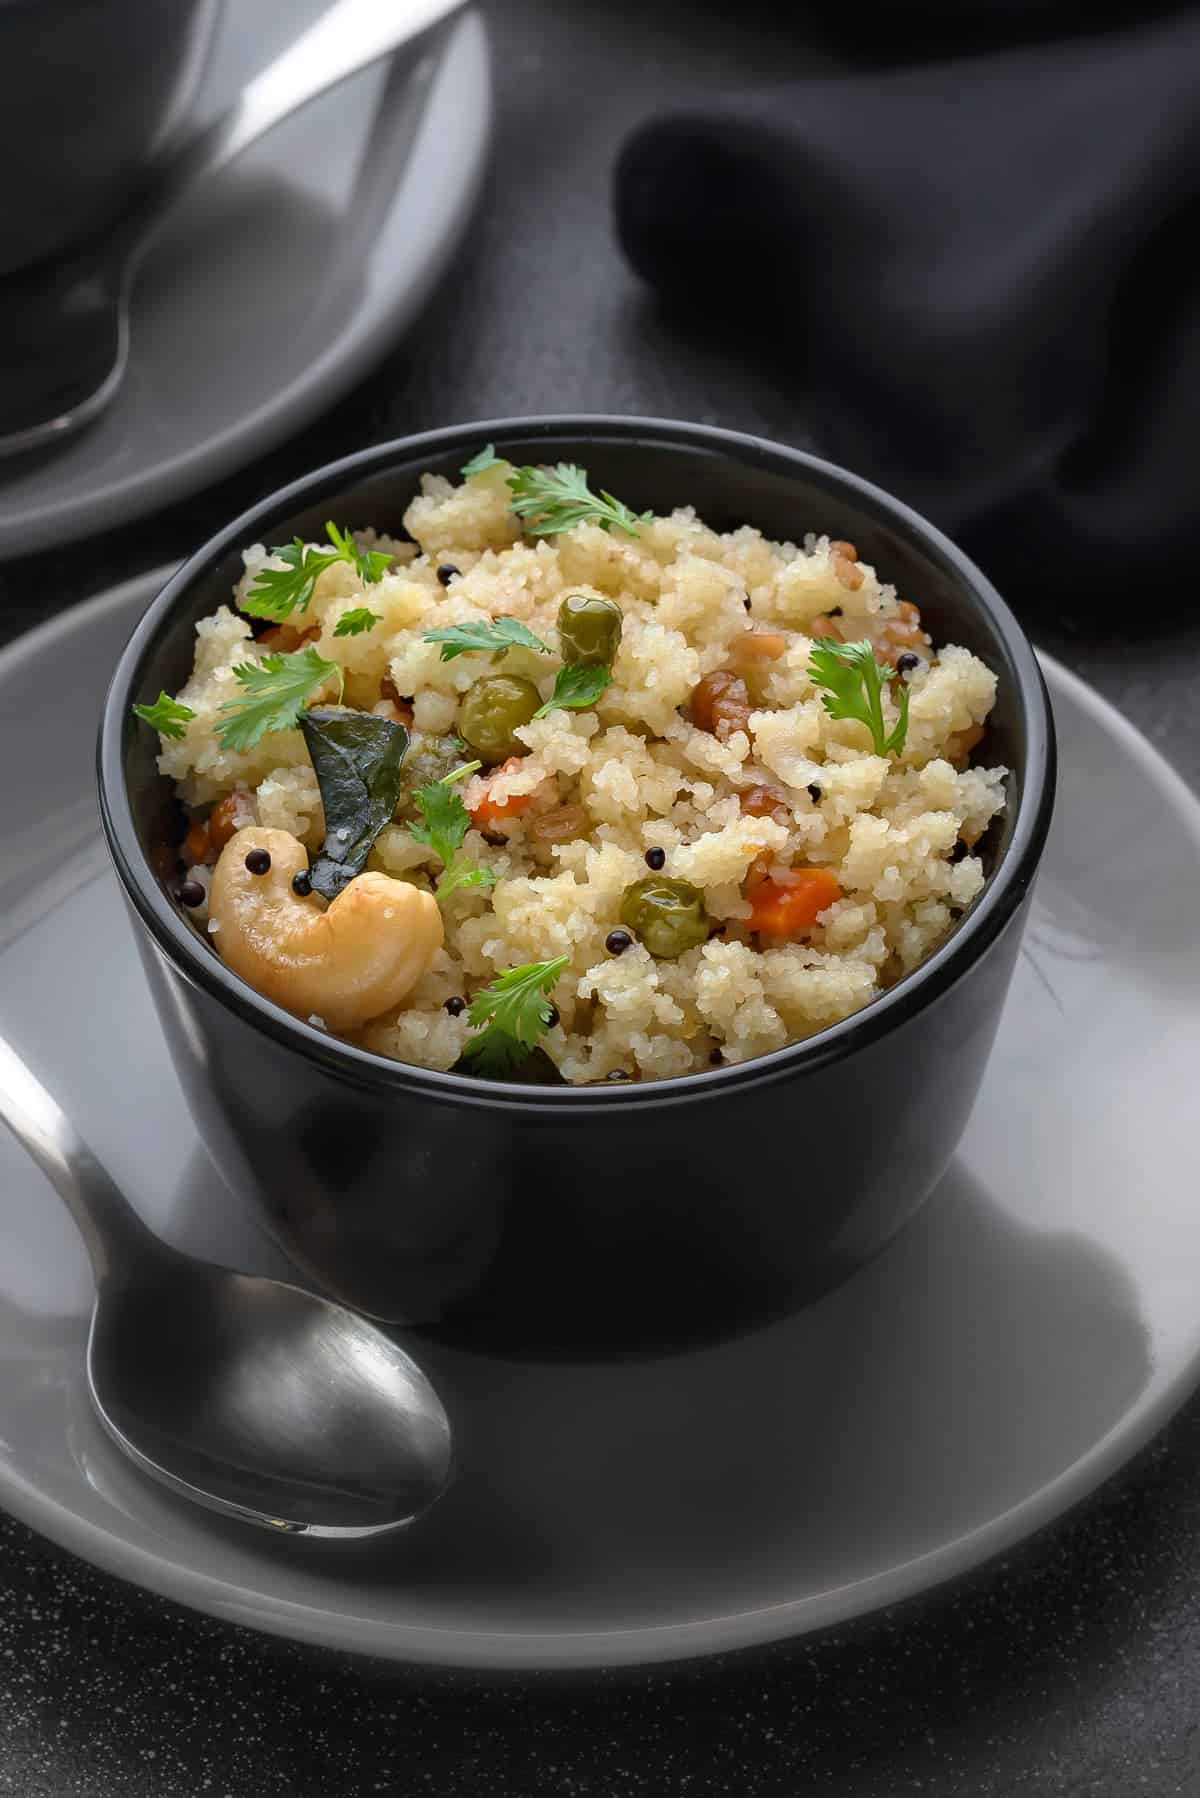 South Indian rava upma dish served in black bowl, with a spoon on side.